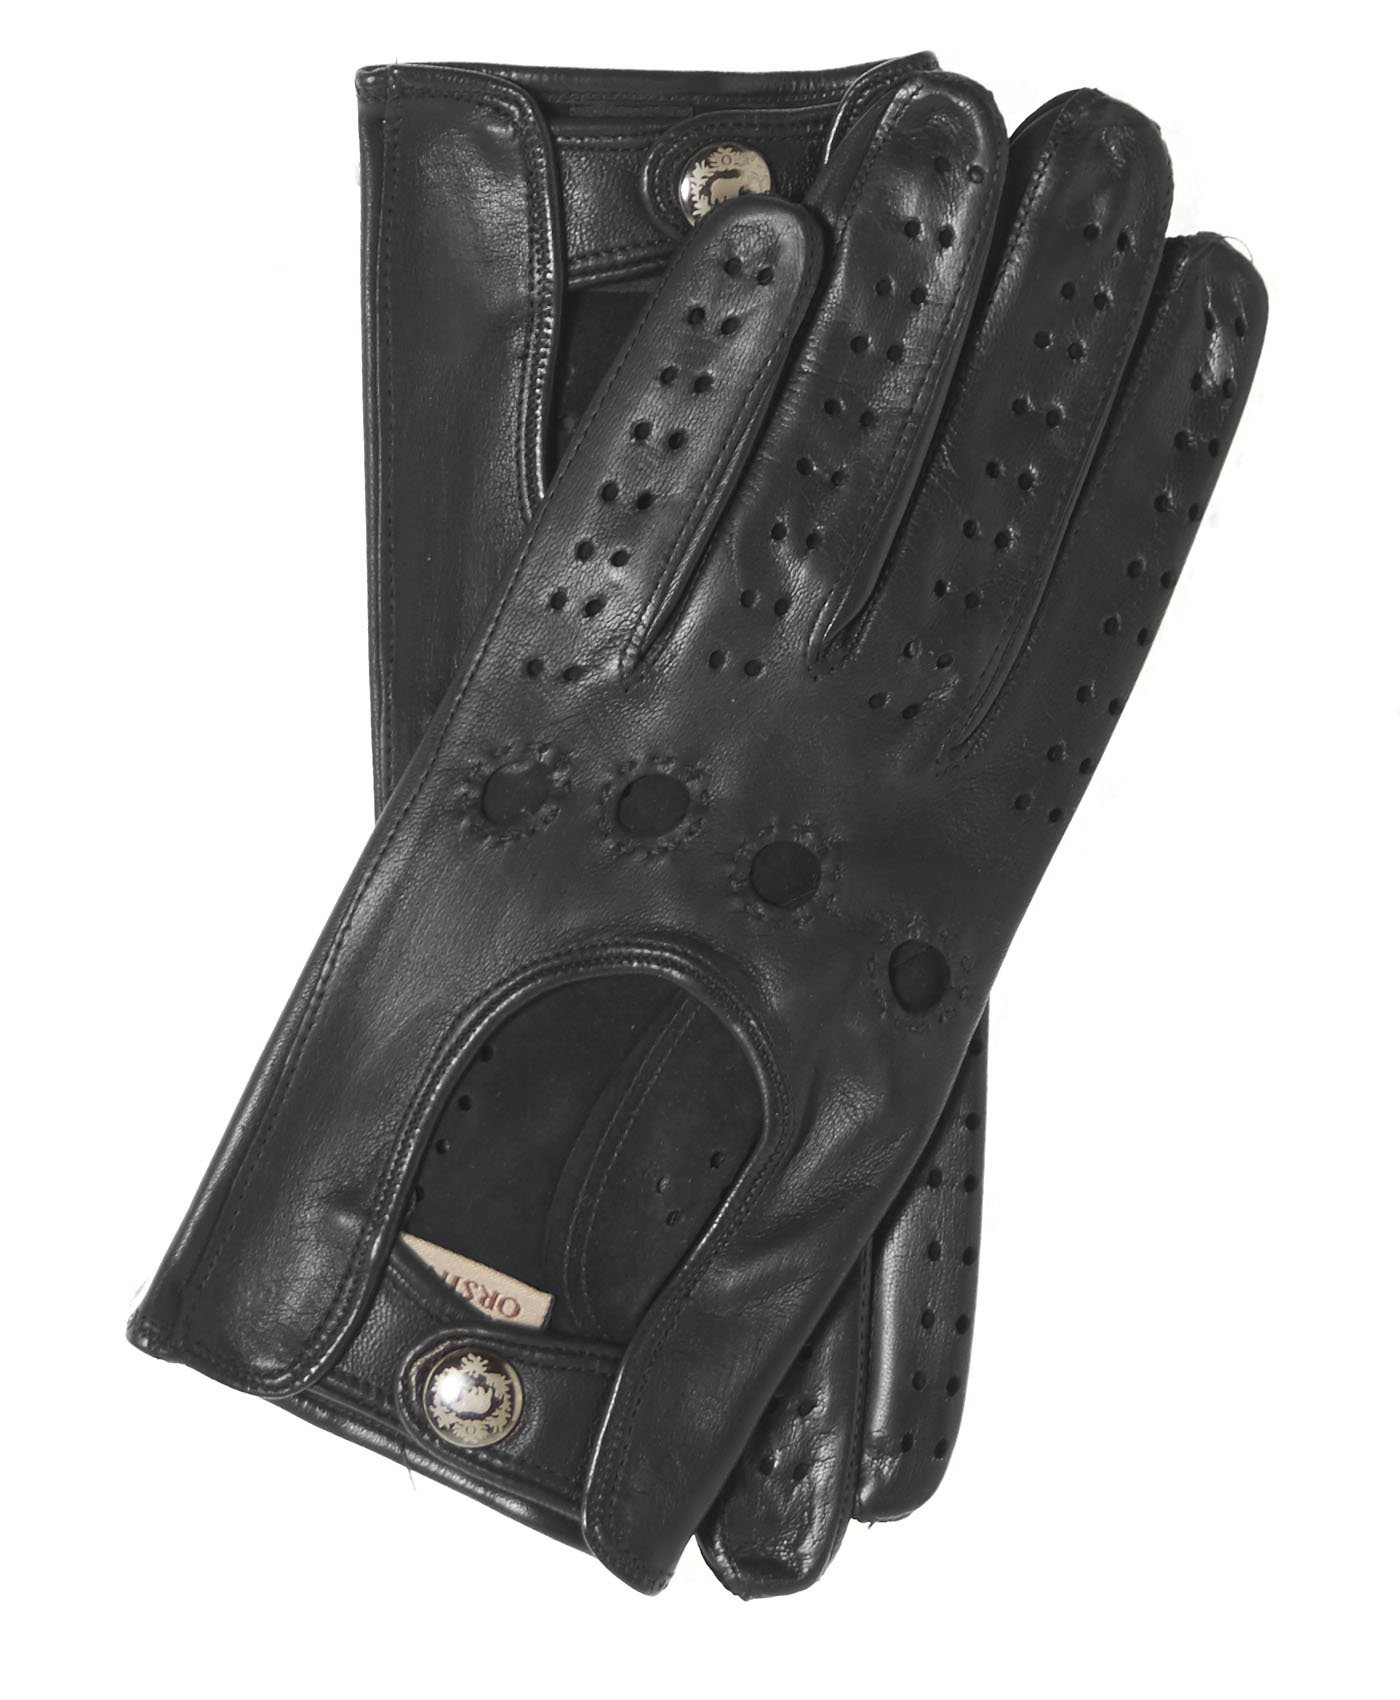 Fratelli Orsini Women's Italian Leather Driving Gloves Size 8 Color Black